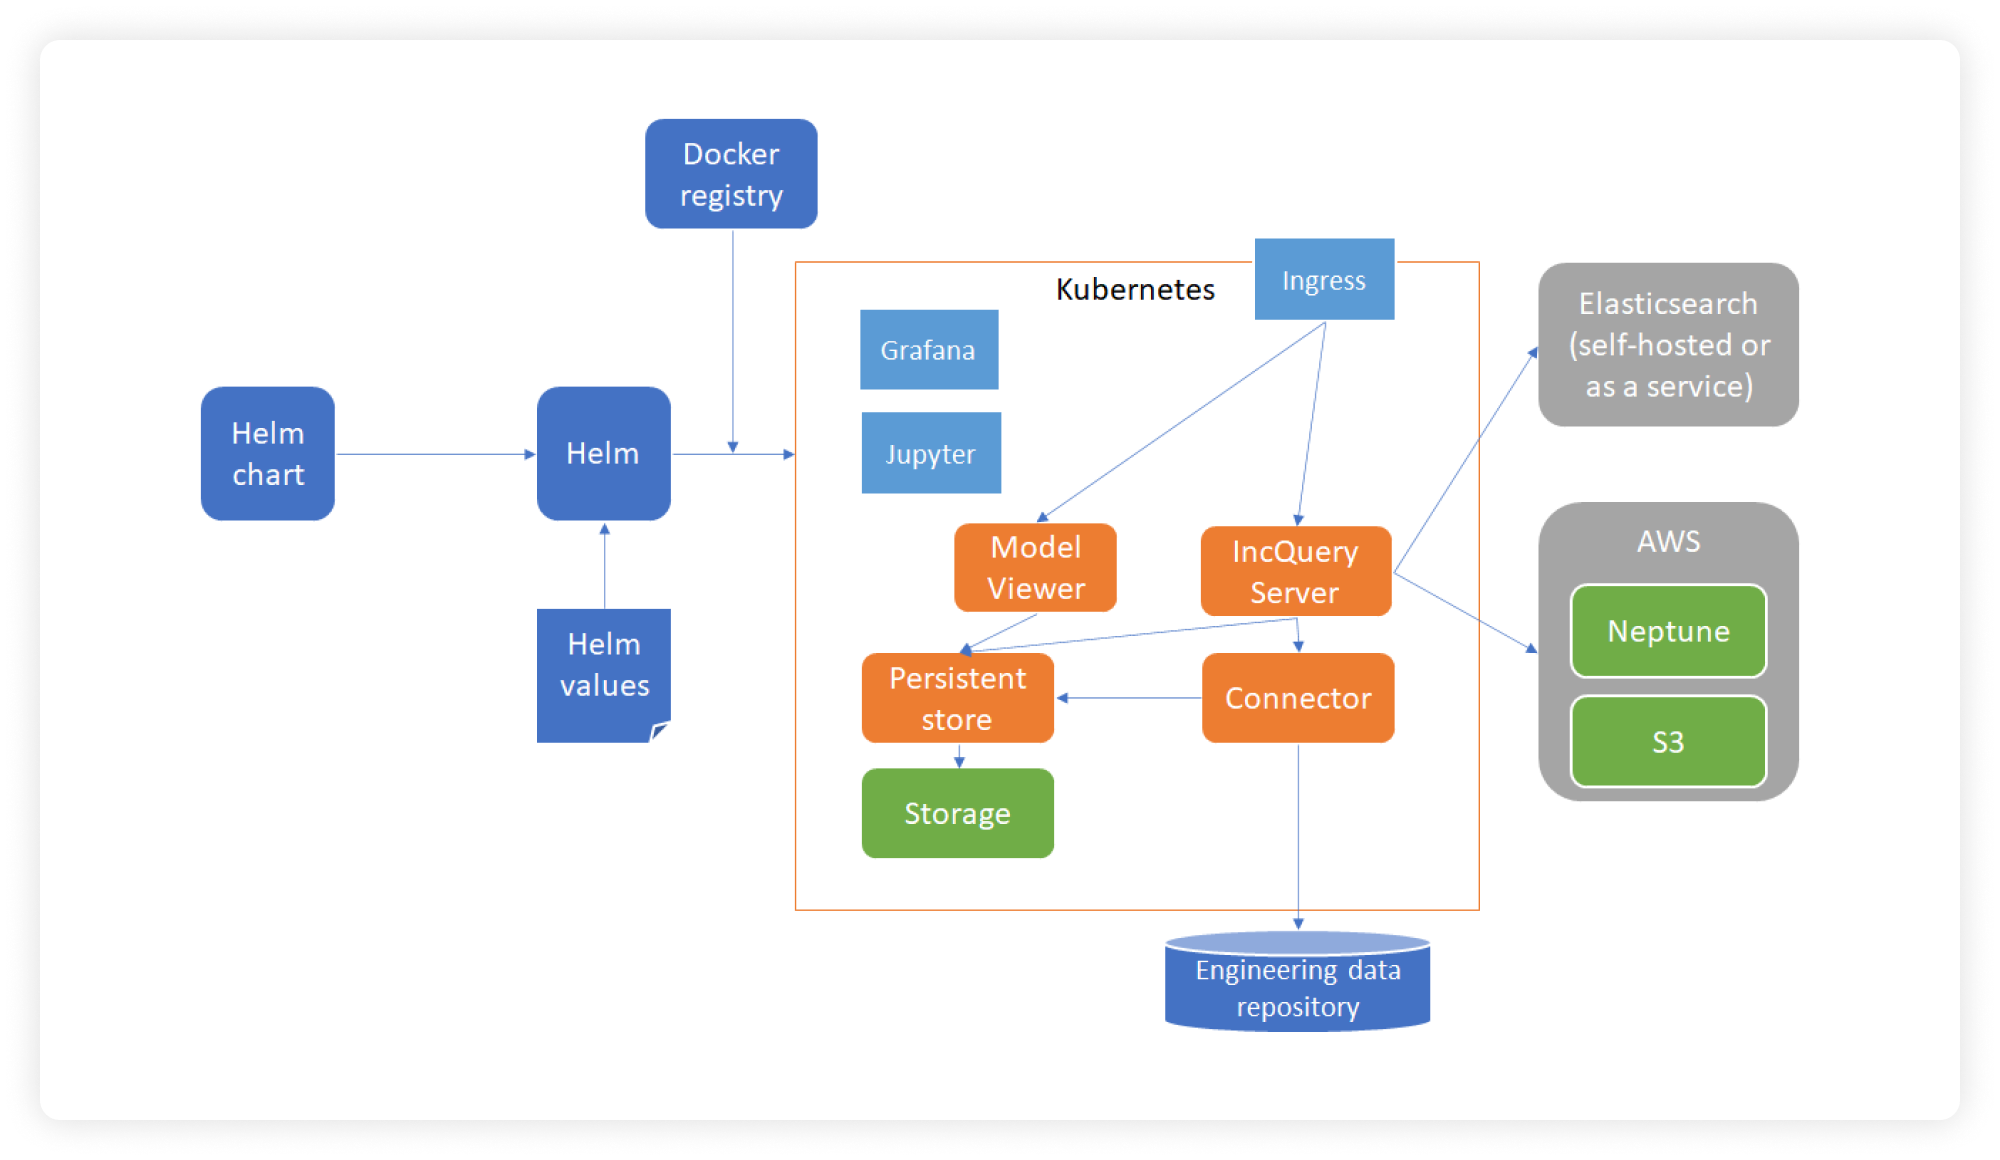 A screenshot about the workflow of IncQery Server